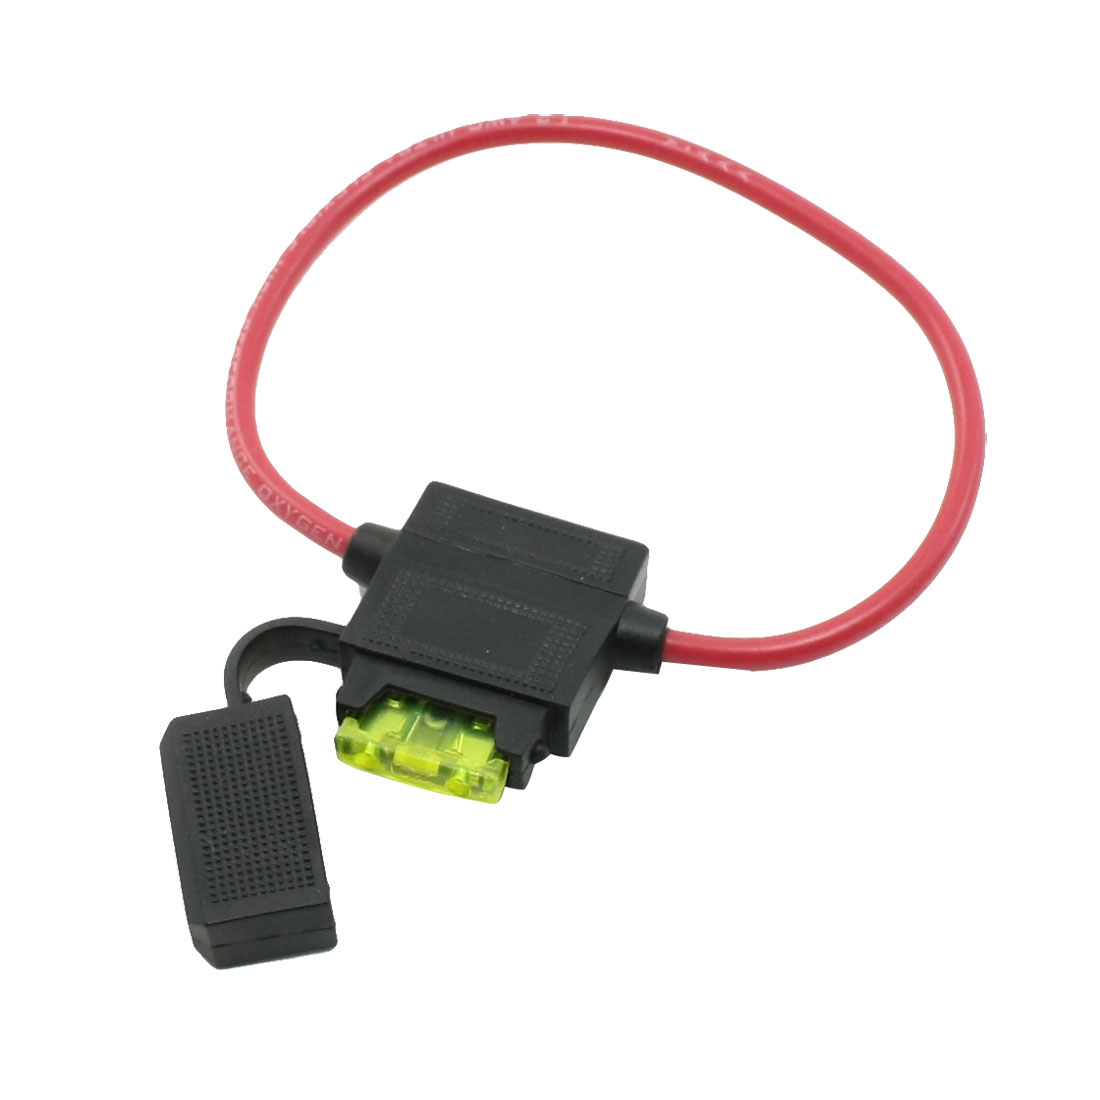 hight resolution of unique bargains bh708 inline 12 awg blade fuse holder block 2 pin fuse 12v 10a for car boat walmart com